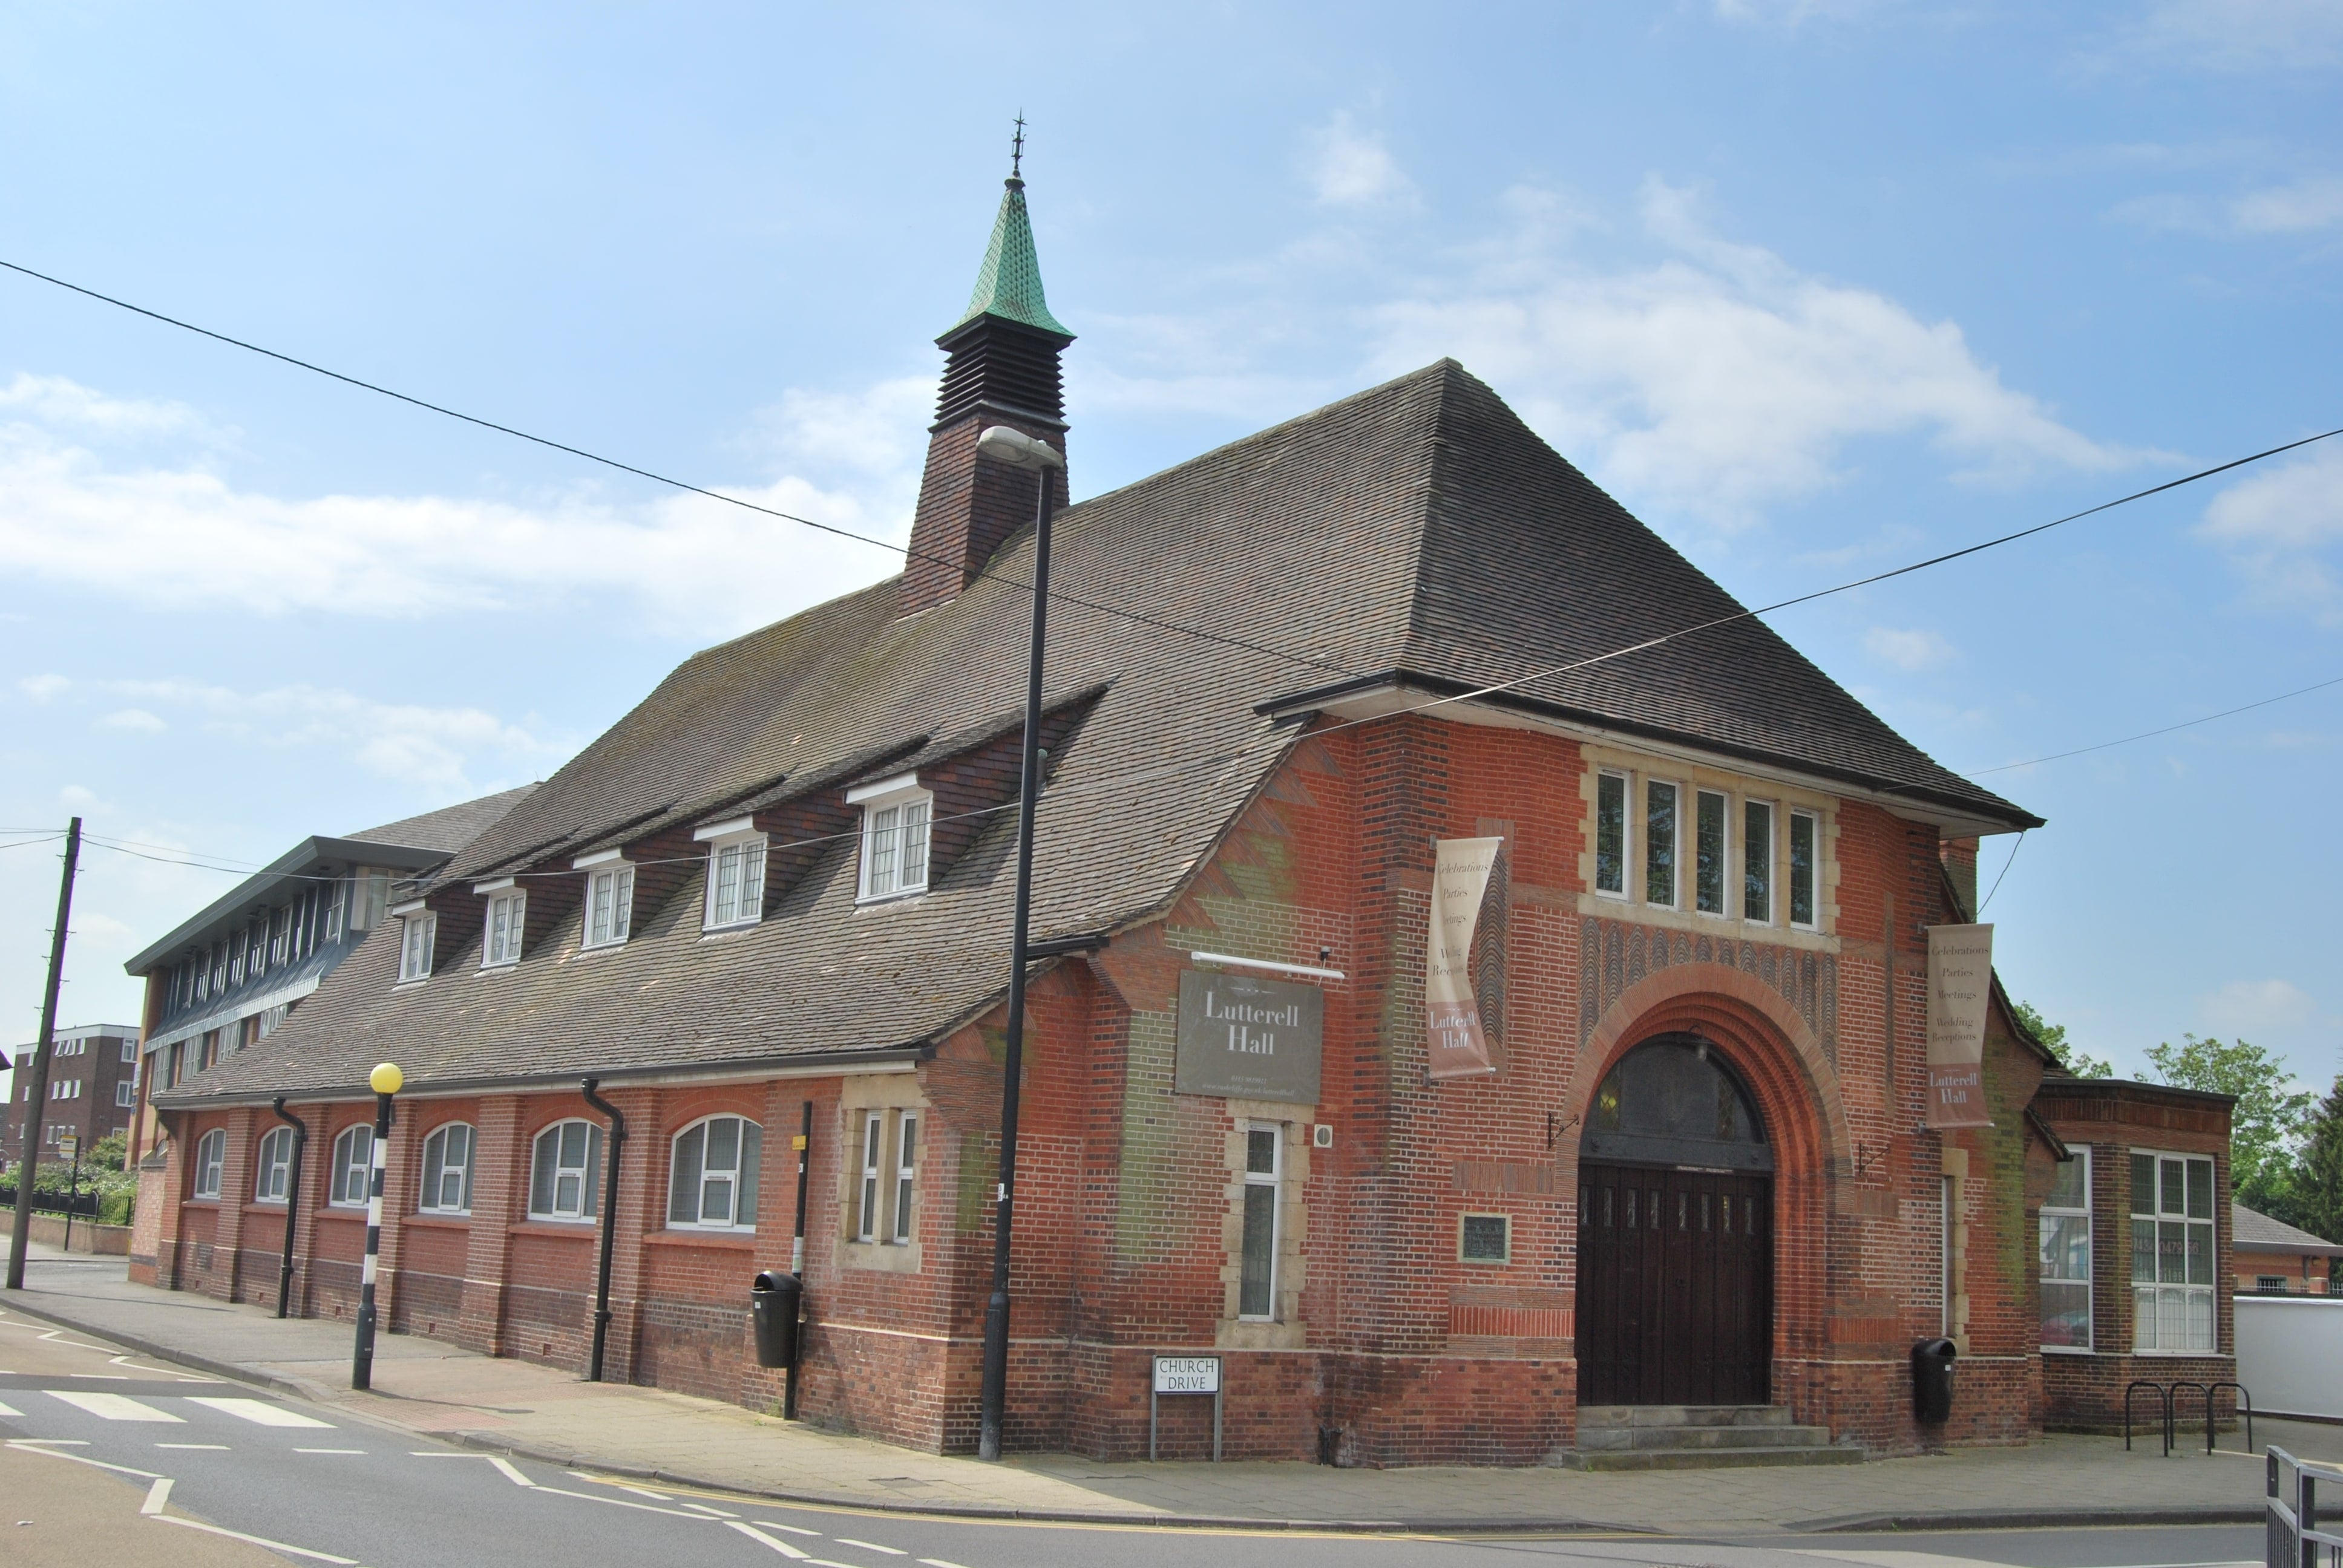 Rushcliffe Borough Councils Cabinet will discuss the potential to market the Lutterell Hall site